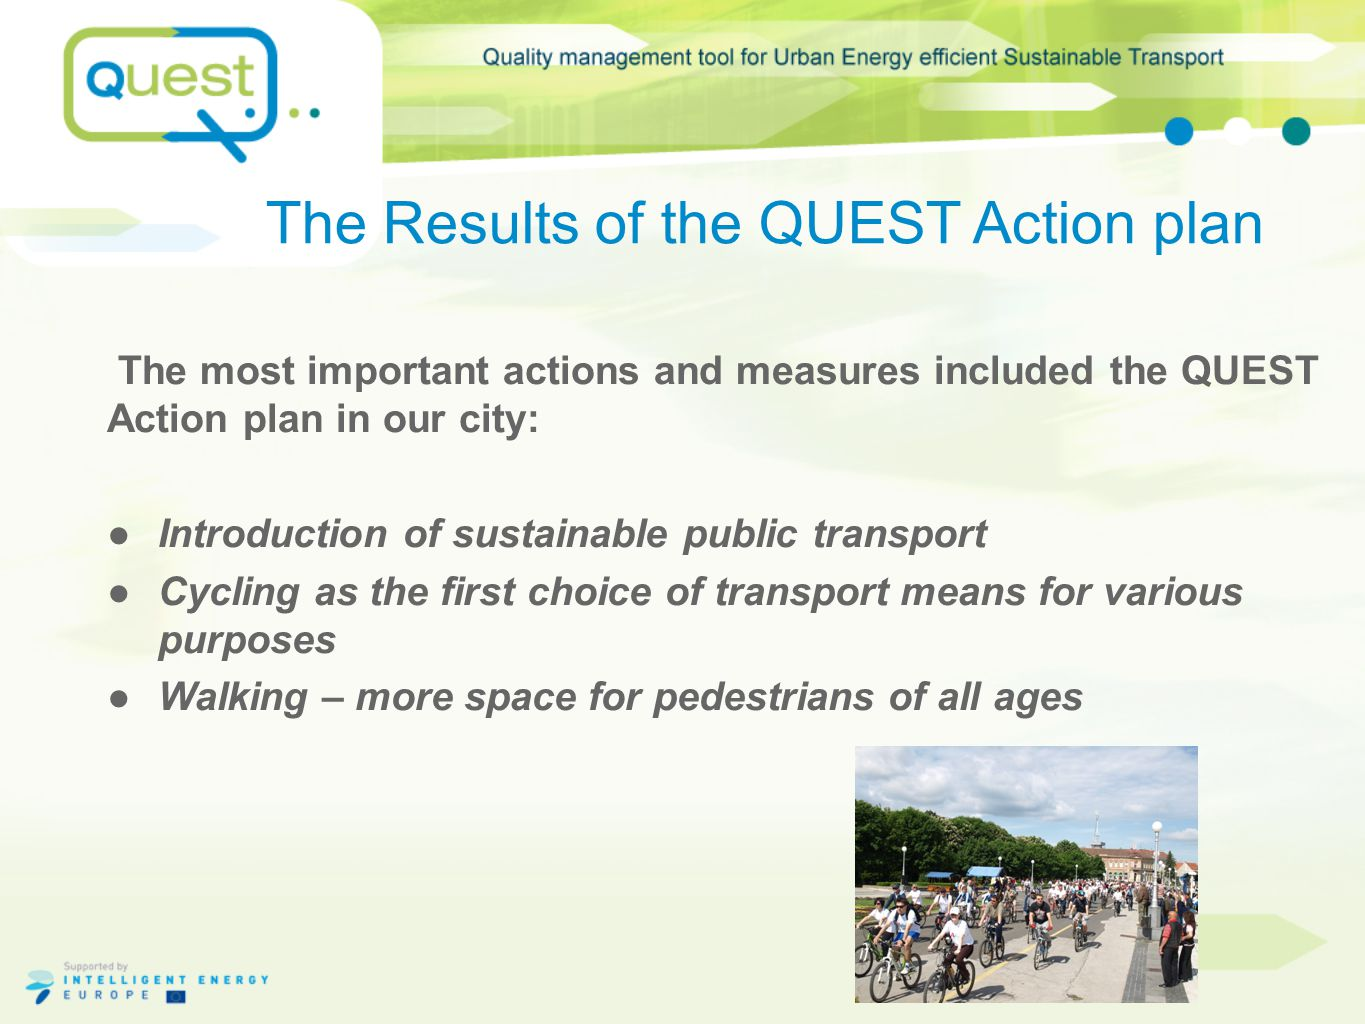 The Results of the QUEST Action plan The most important actions and measures included the QUEST Action plan in our city: ●Introduction of sustainable public transport ●Cycling as the first choice of transport means for various purposes ●Walking – more space for pedestrians of all ages